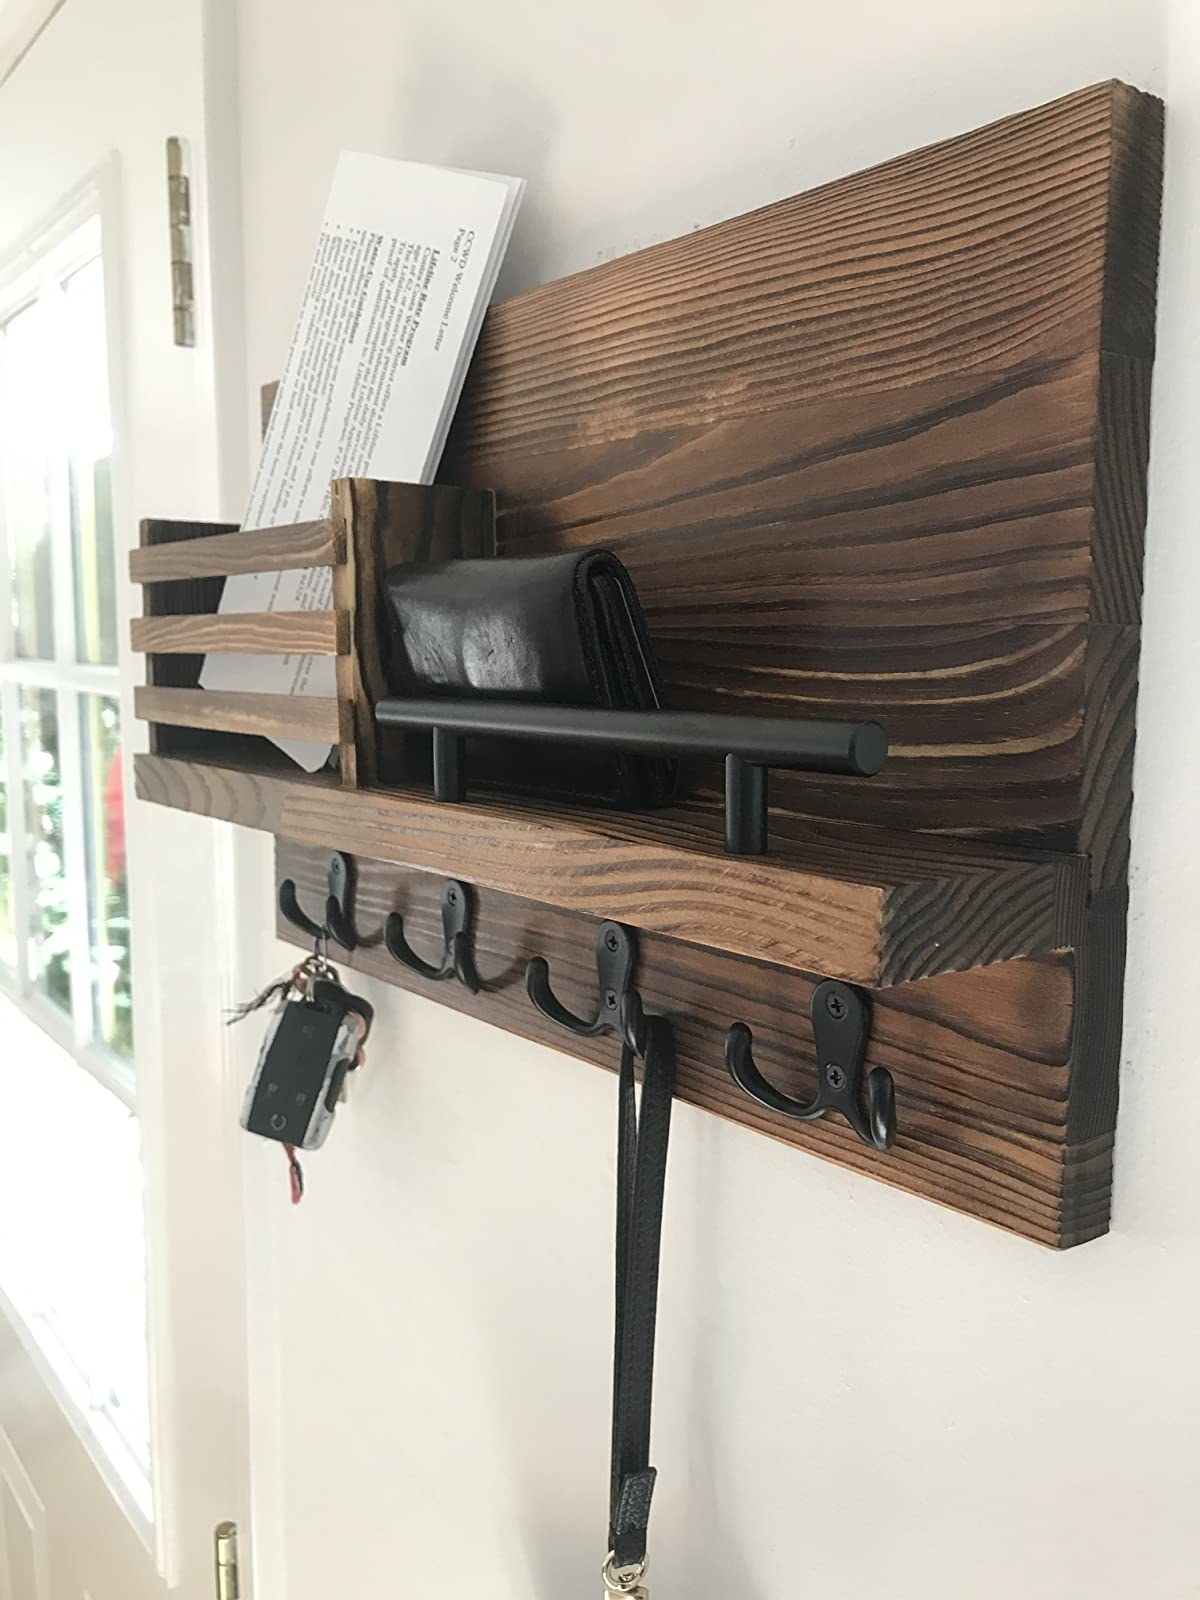 reviewer image of the Ripple Creek Key Holder and Mail Shelf mounted on an entryway wall